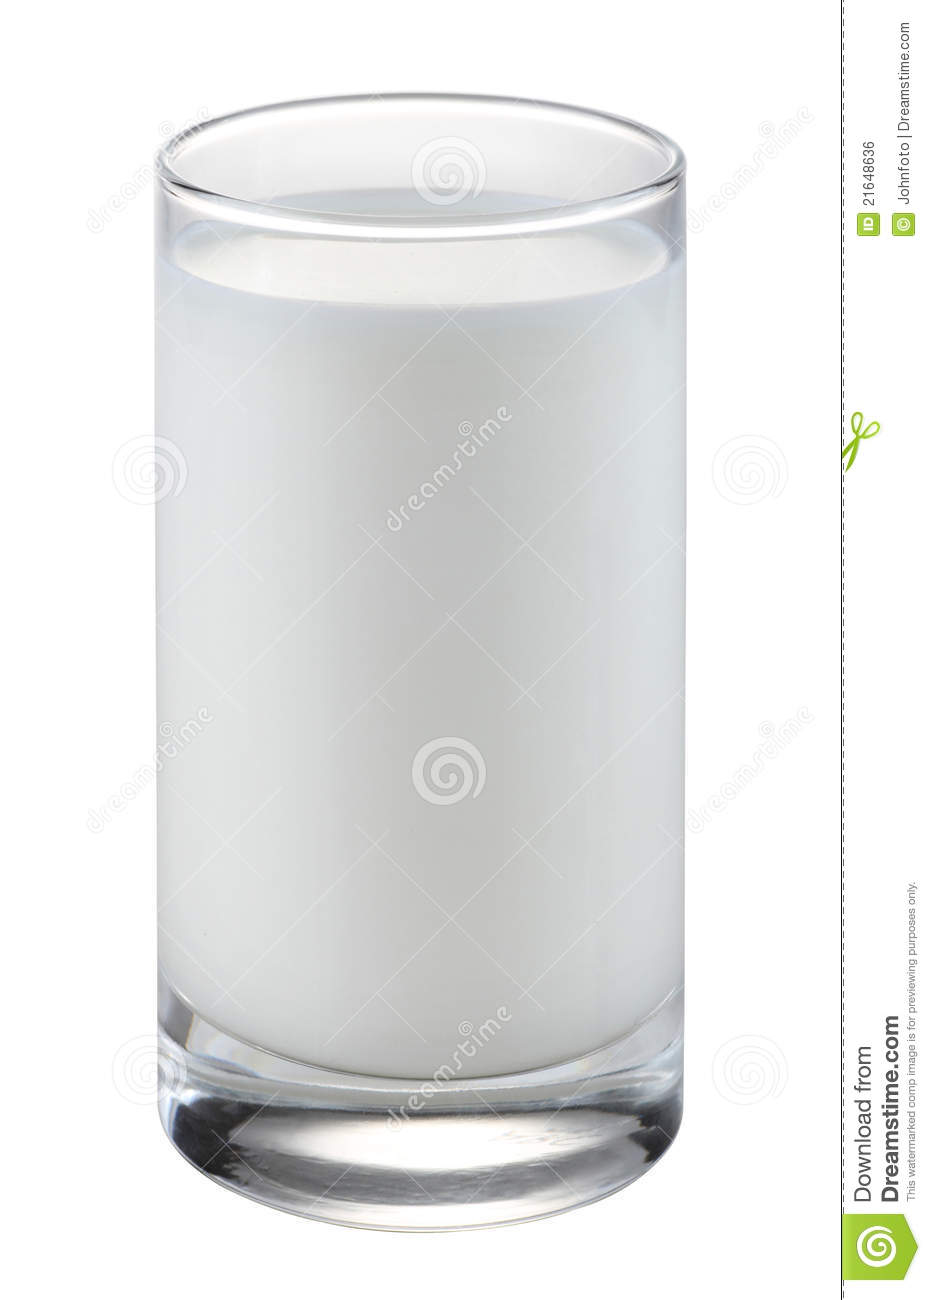 clipart of a glass of milk - photo #35